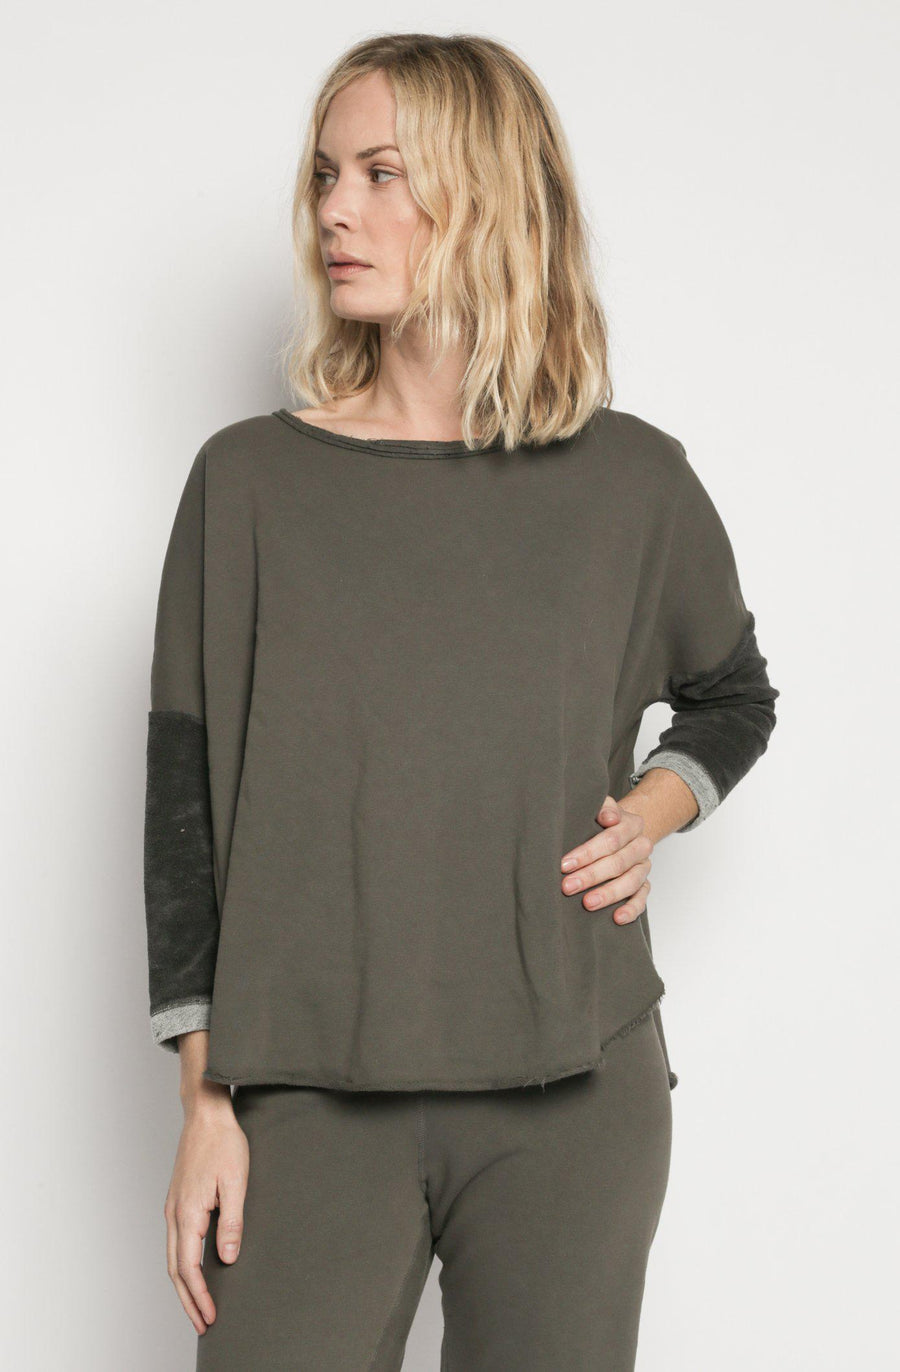 Patch Yoga Pullover - Charcoal